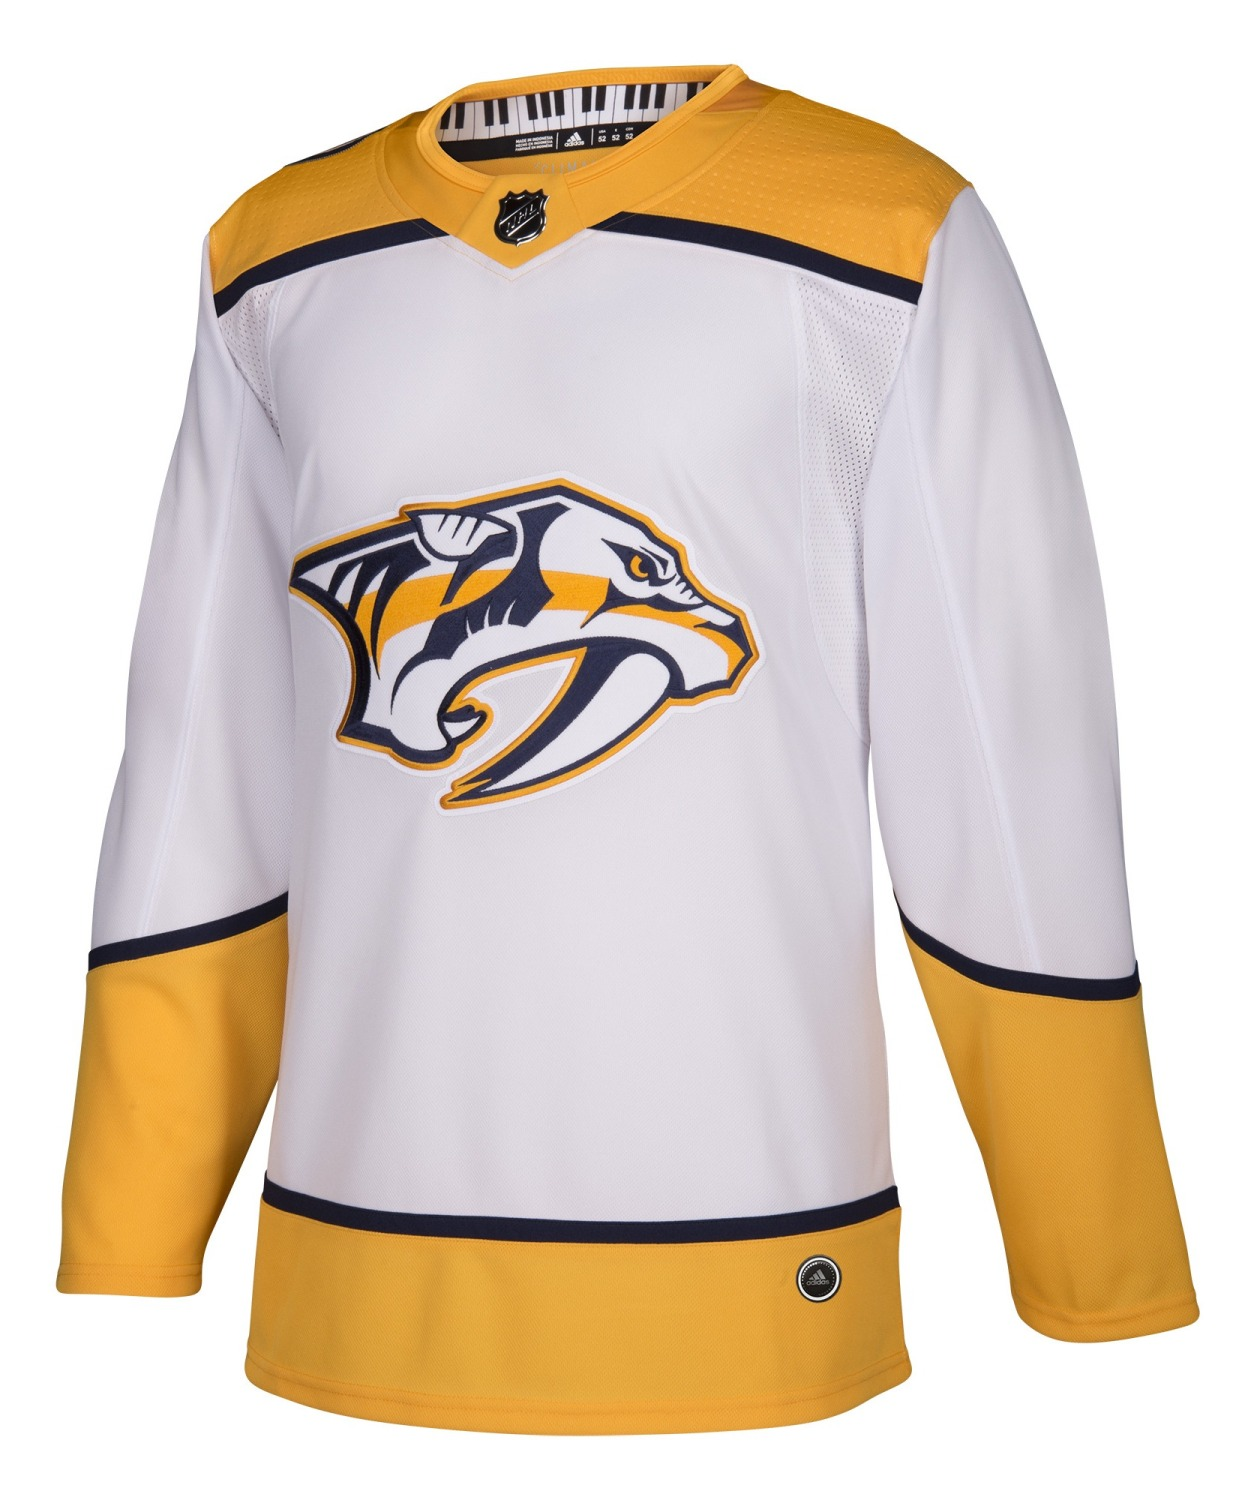 Nashville Predators Adidas NHL Men's Climalite Authentic Away Hockey Jersey